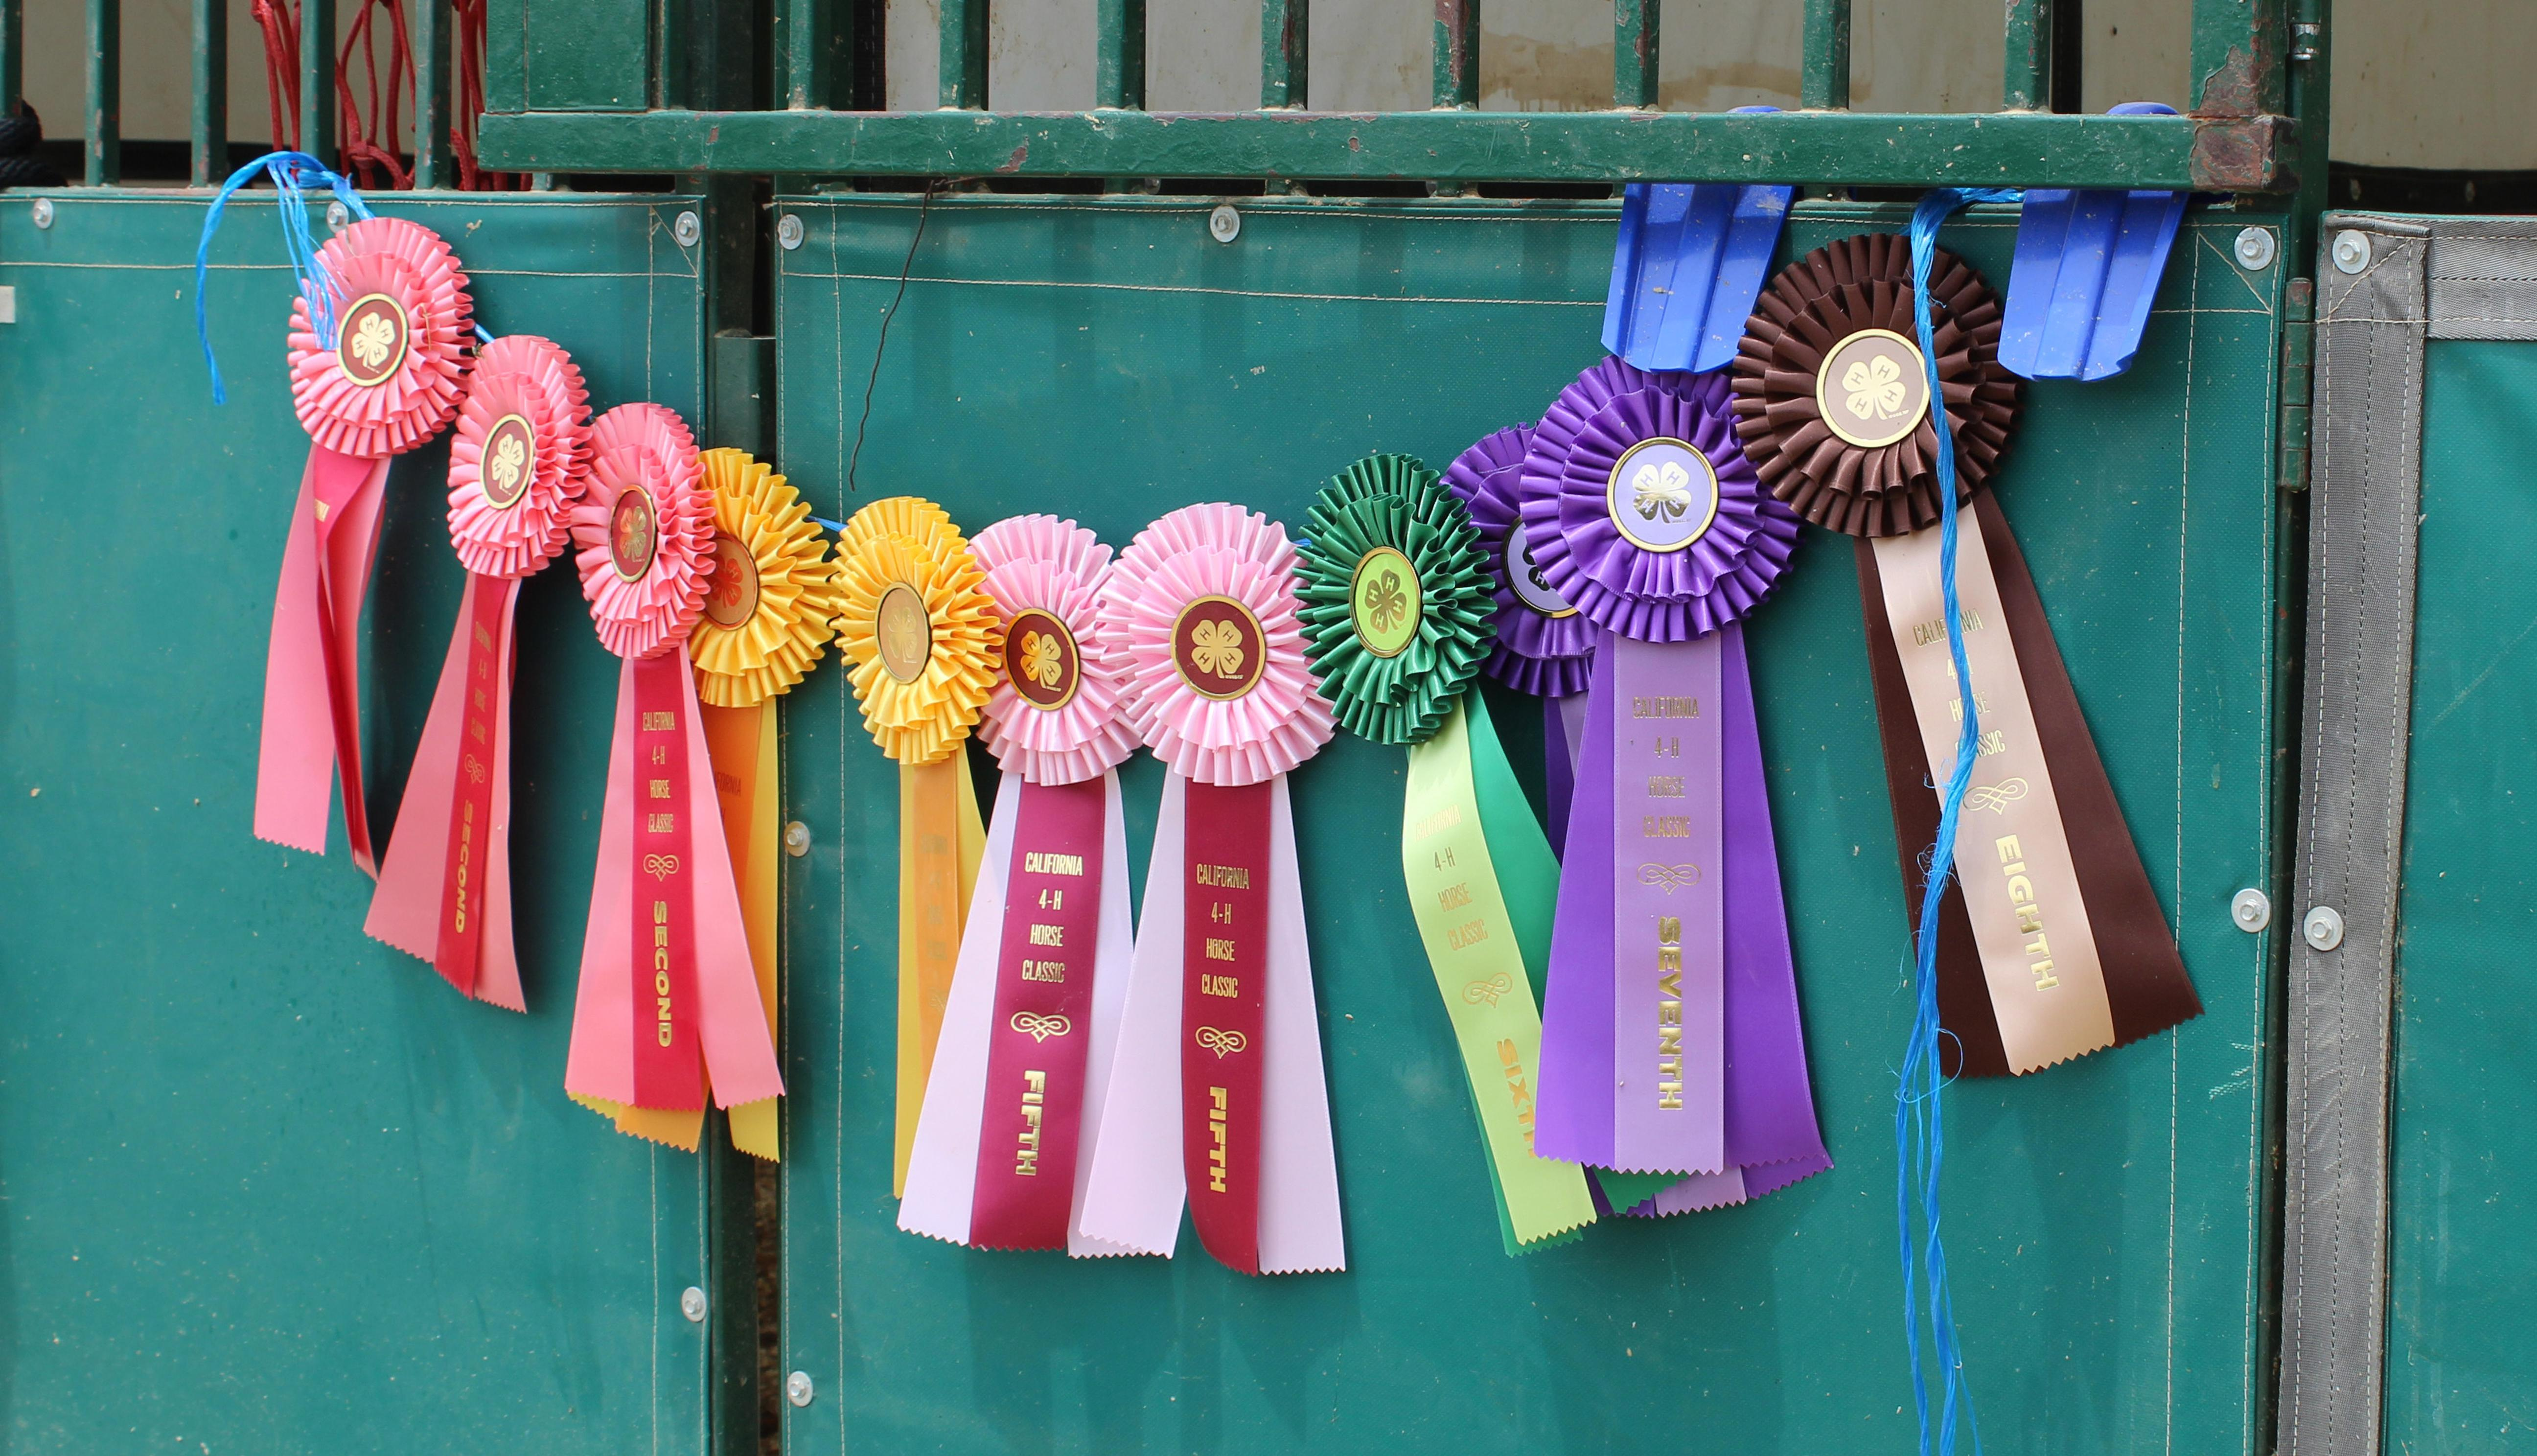 Award ribbons